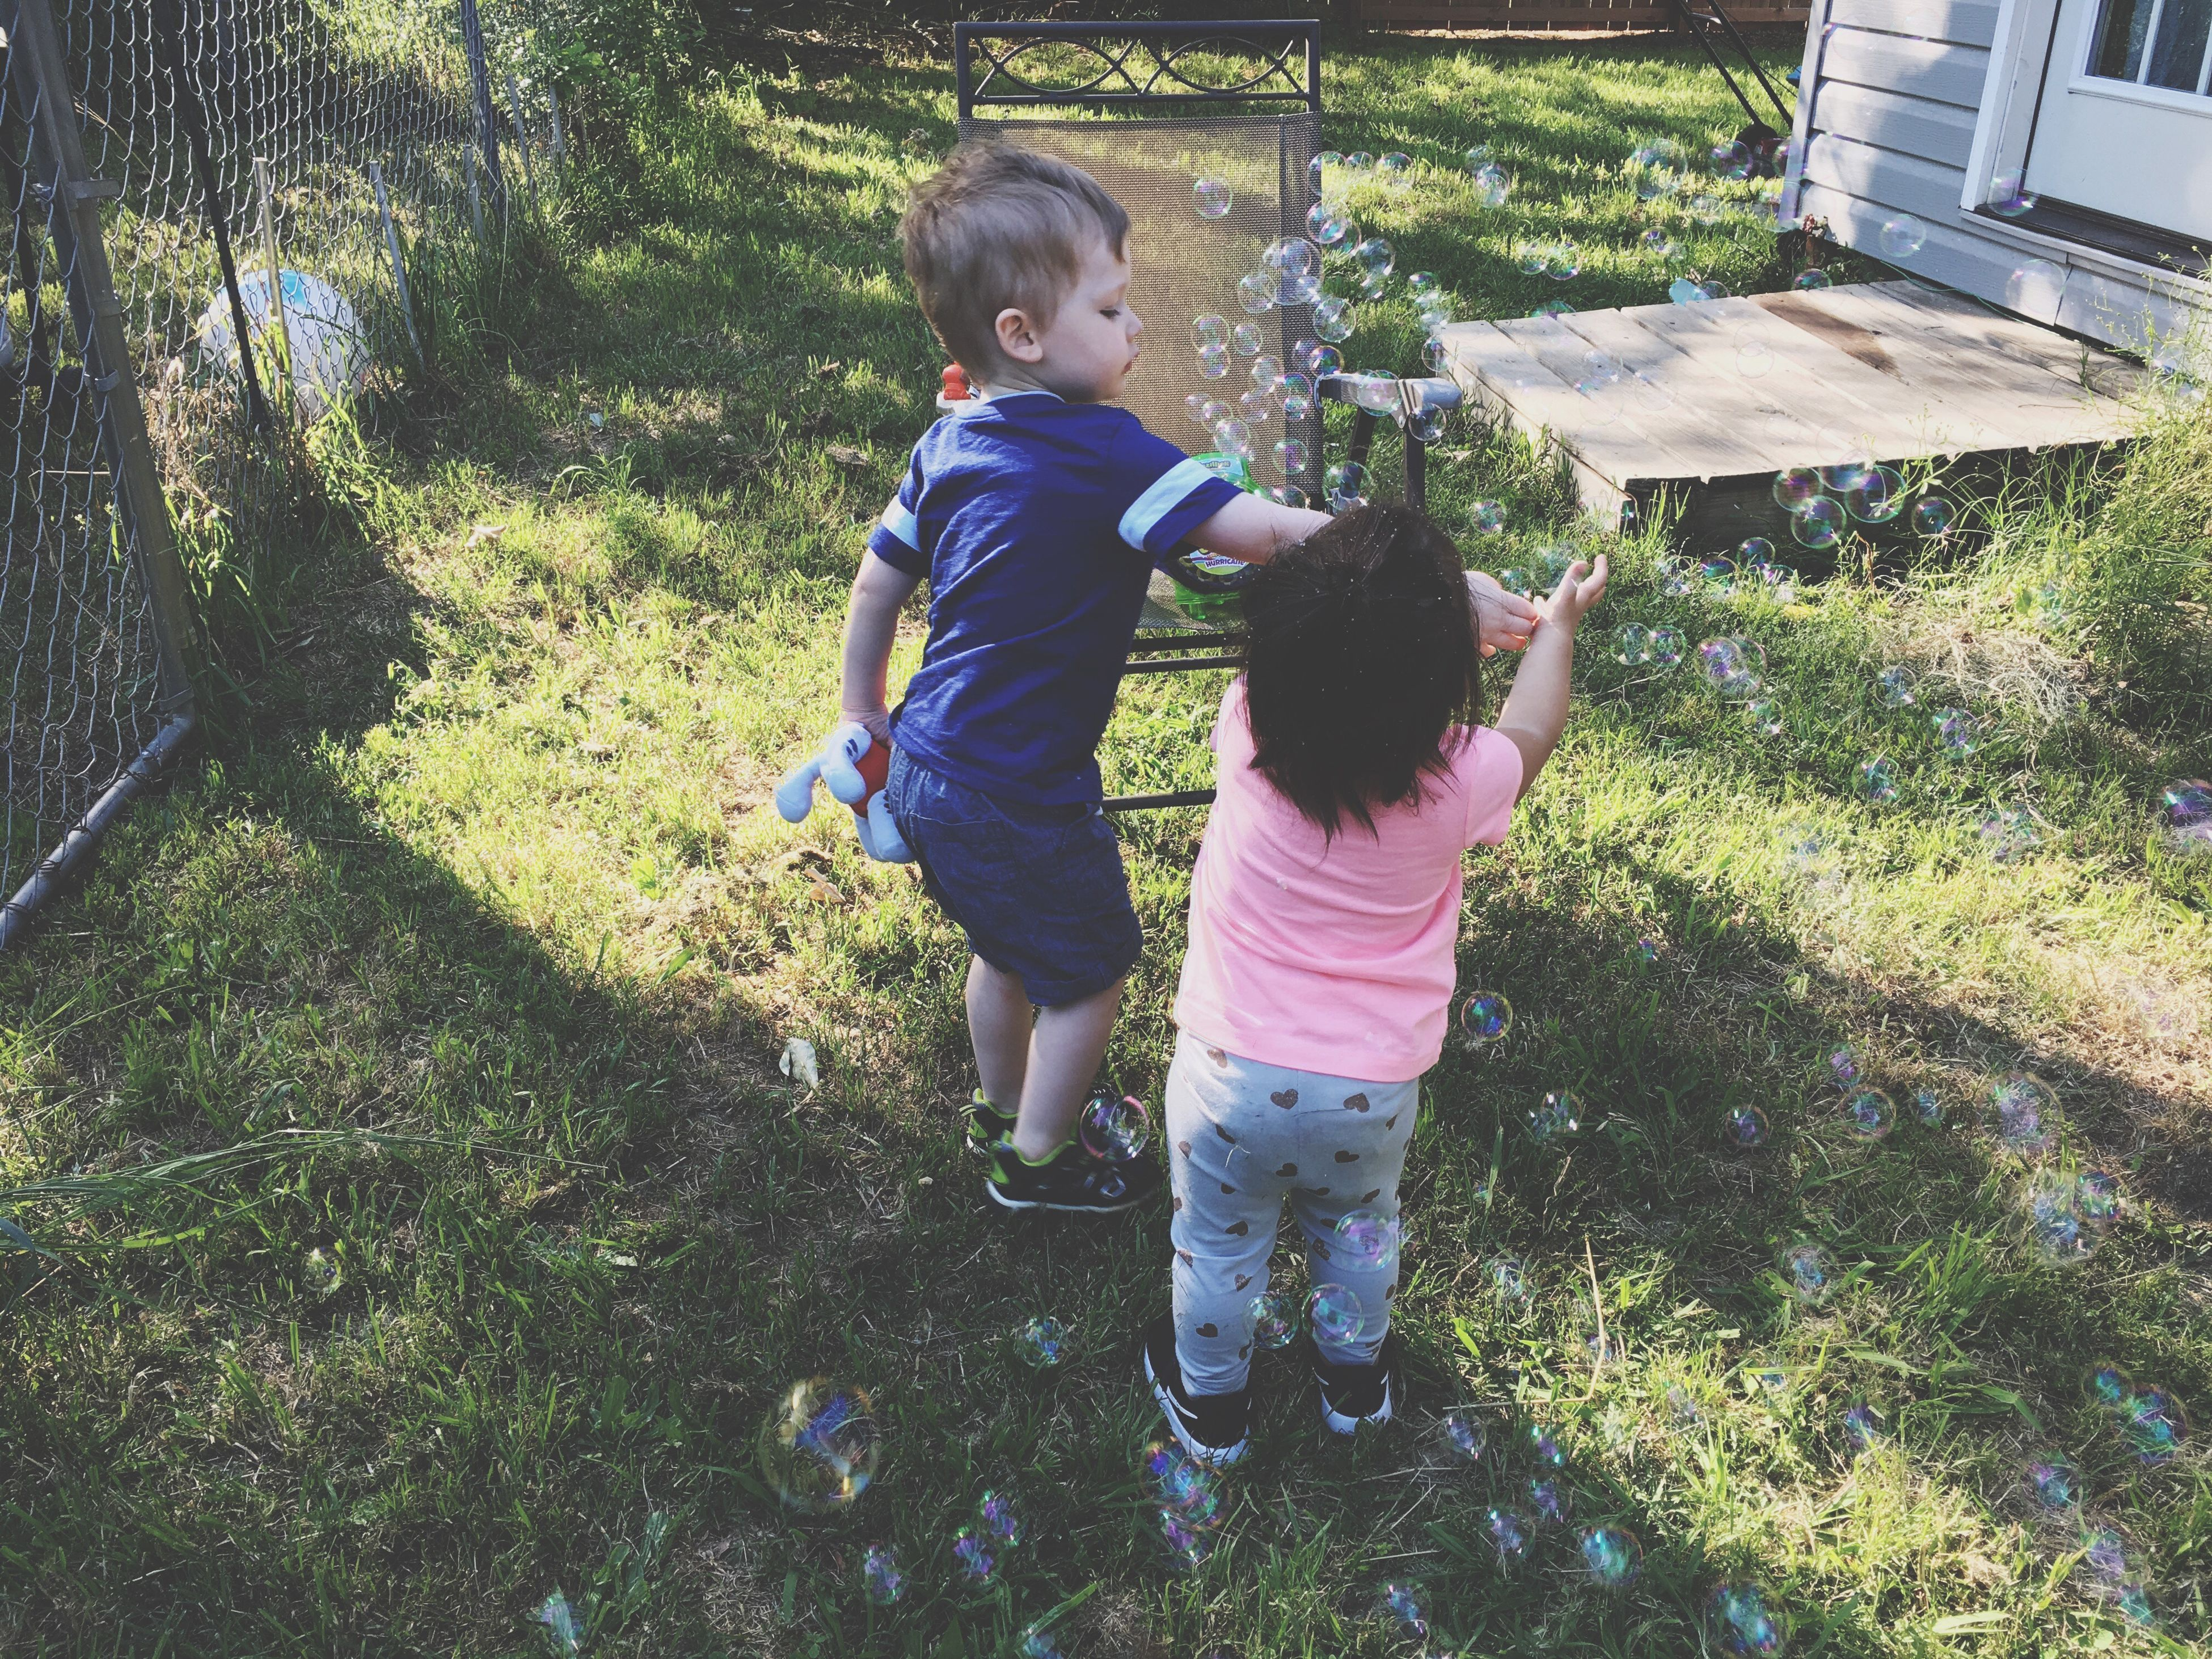 childhood, two people, full length, grass, day, real people, togetherness, casual clothing, leisure activity, outdoors, boys, sunlight, tree, nature, animal themes, people